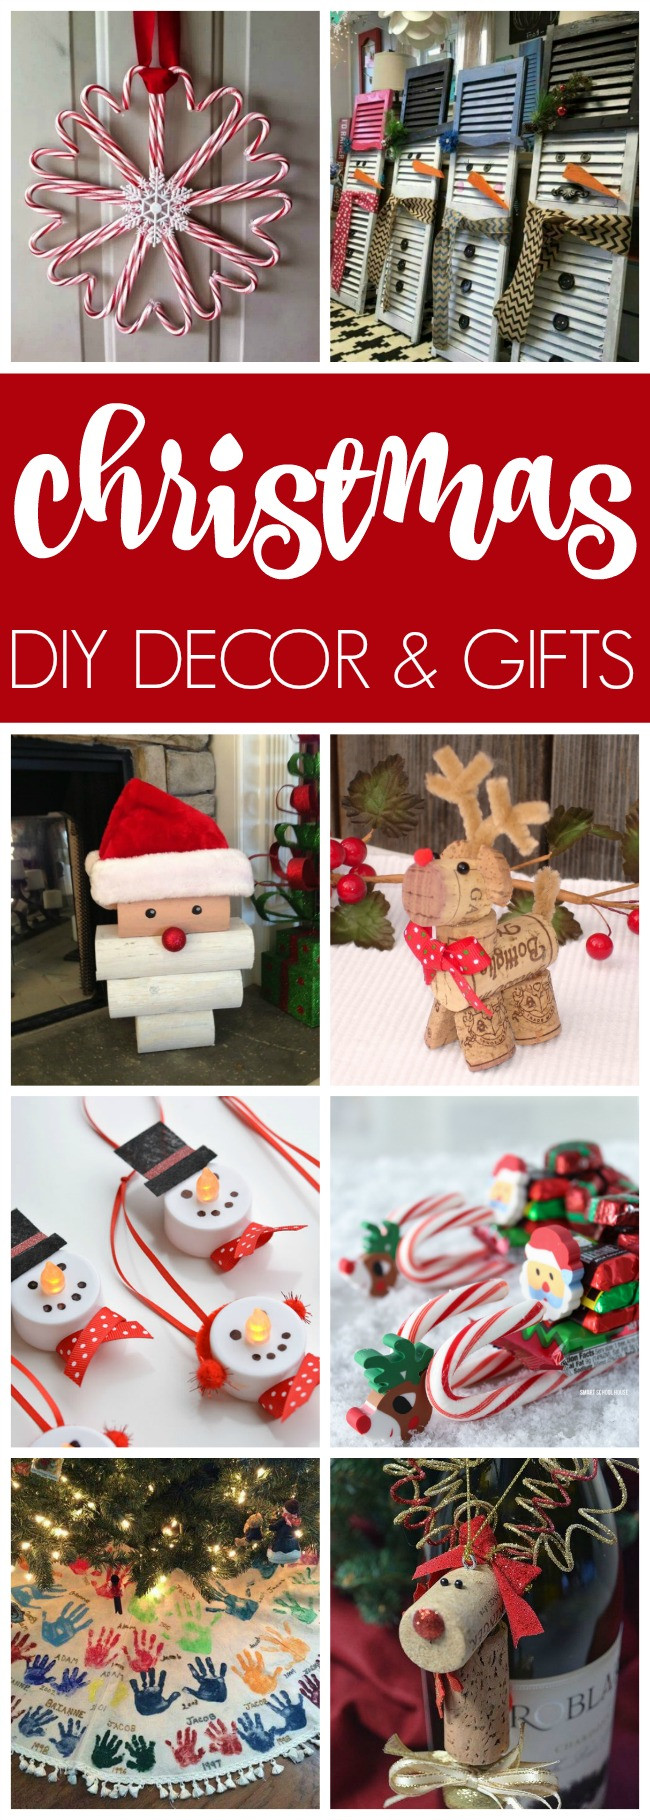 DIY Holiday Gift Ideas  17 Epic Christmas Craft Ideas Pretty My Party